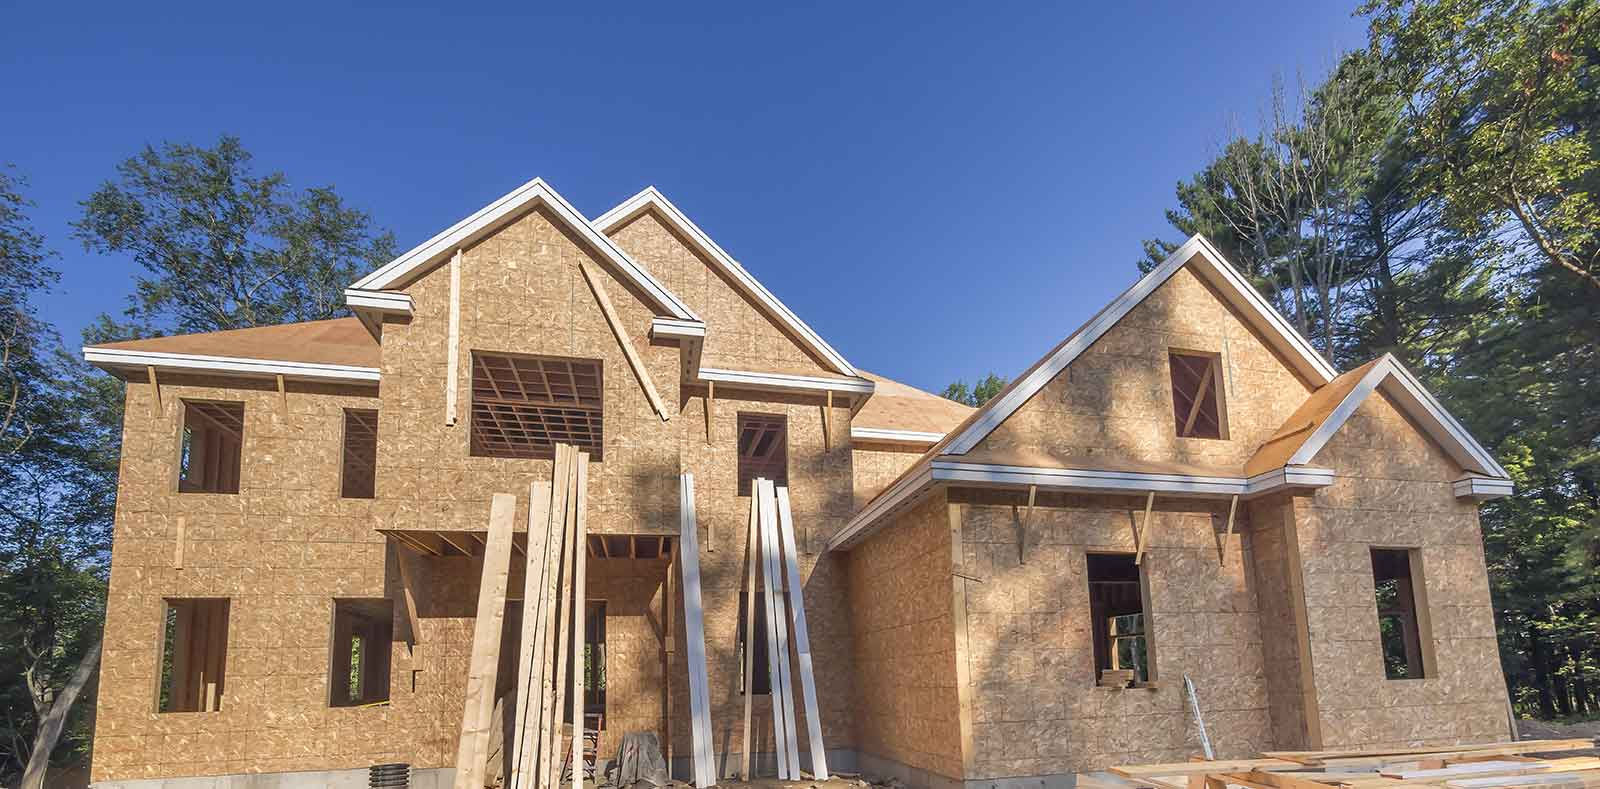 New Construction Homes for Sale in Roswell, GA